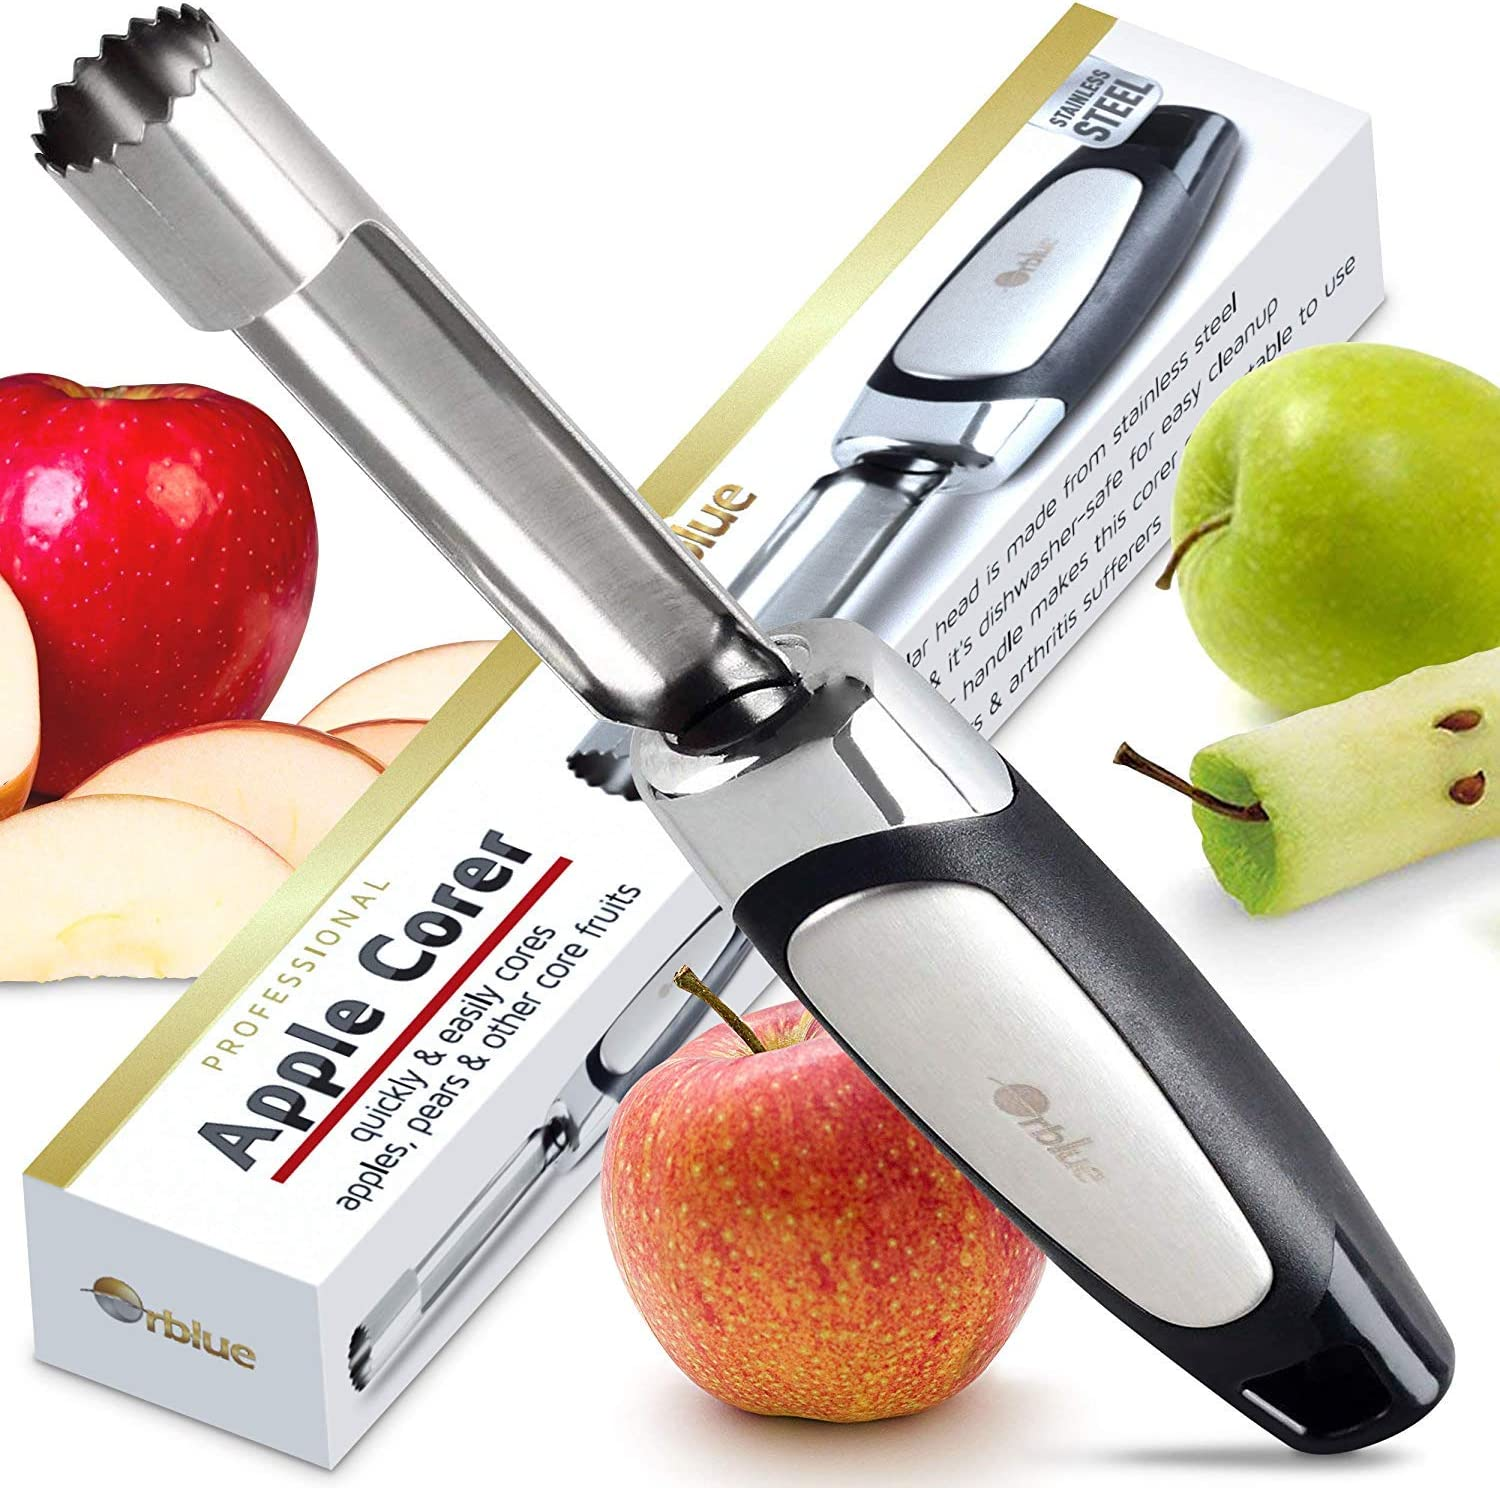 Orblue Apple Corer - Best Stainless Steel Fruit Core Remover Tool with Soft Rubber Handle